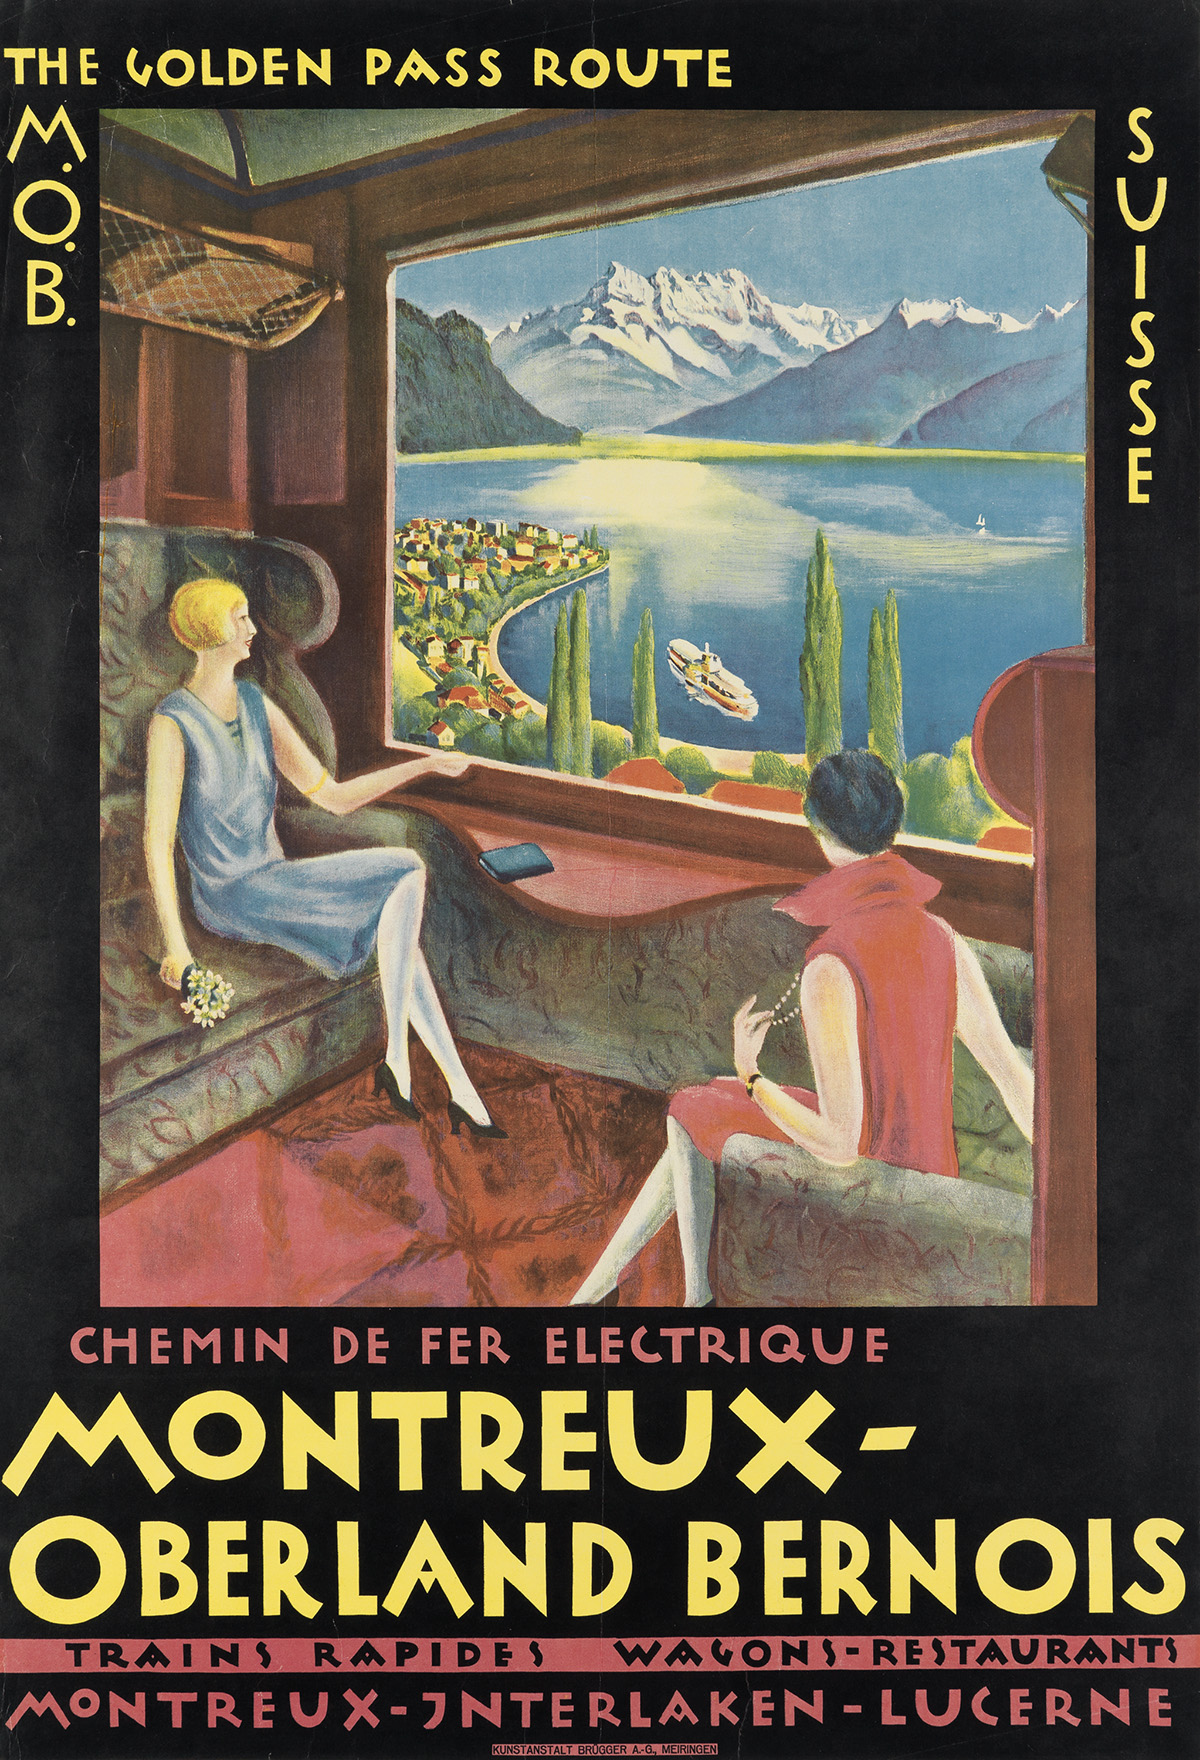 DESIGNER-UNKNOWN-THE-GOLDEN-PASS-ROUTE--MONTREUX---OBERLAND-